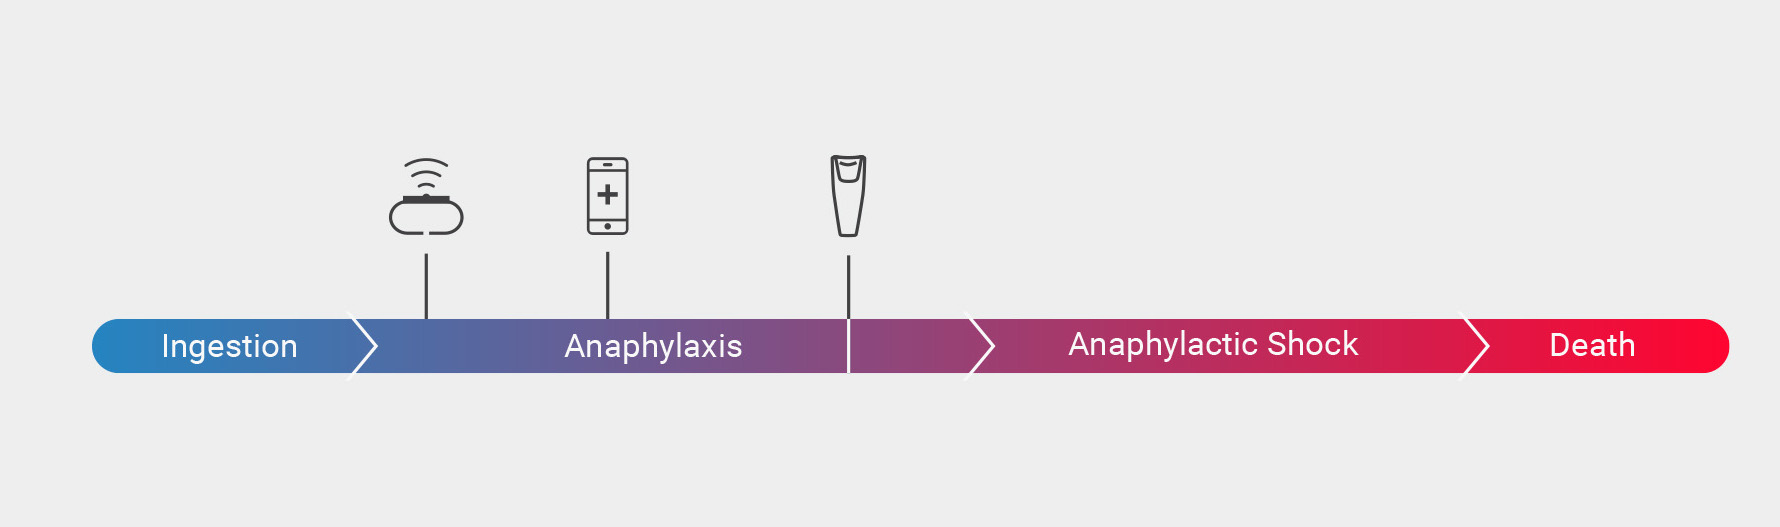 Anaphylaxis Stages from Mild to Severe